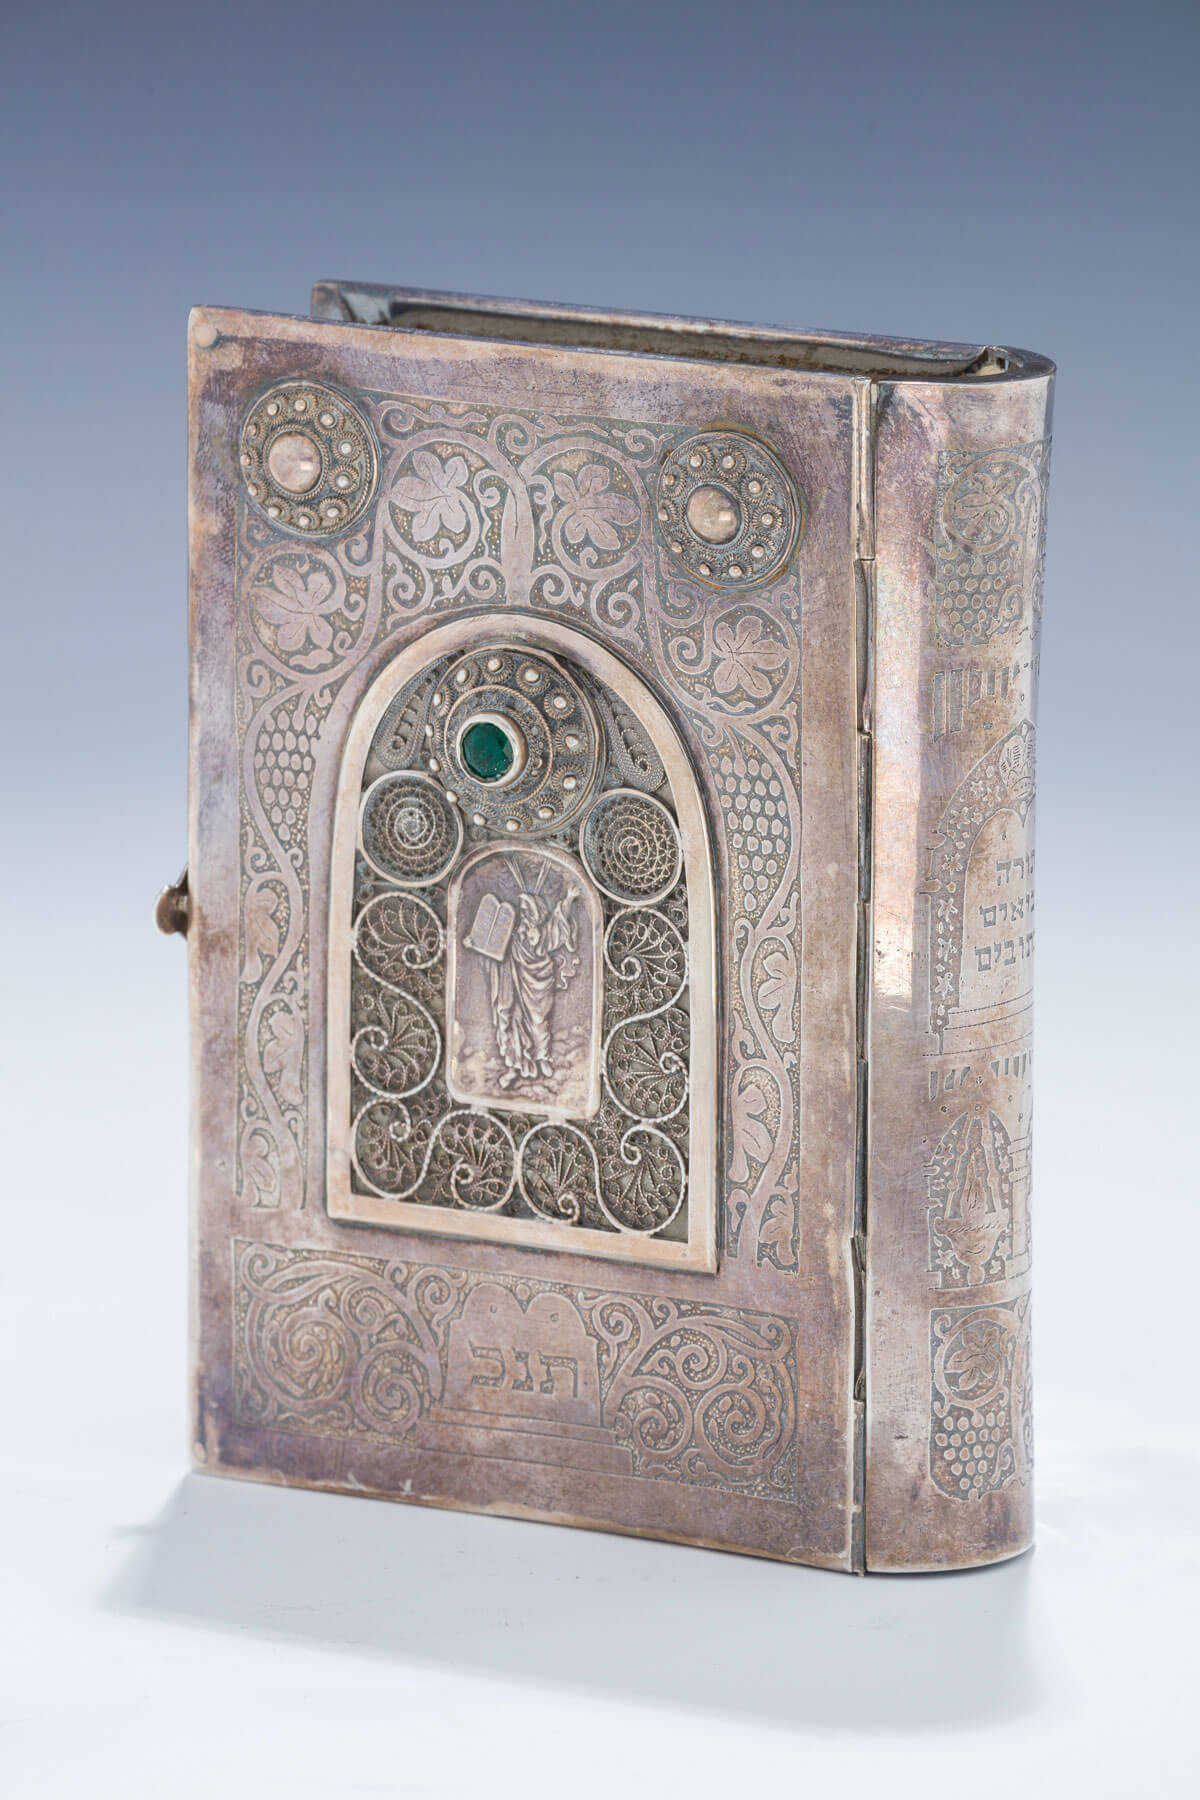 033. A Sterling Silver Binding With Original Tanakh by Bezalel